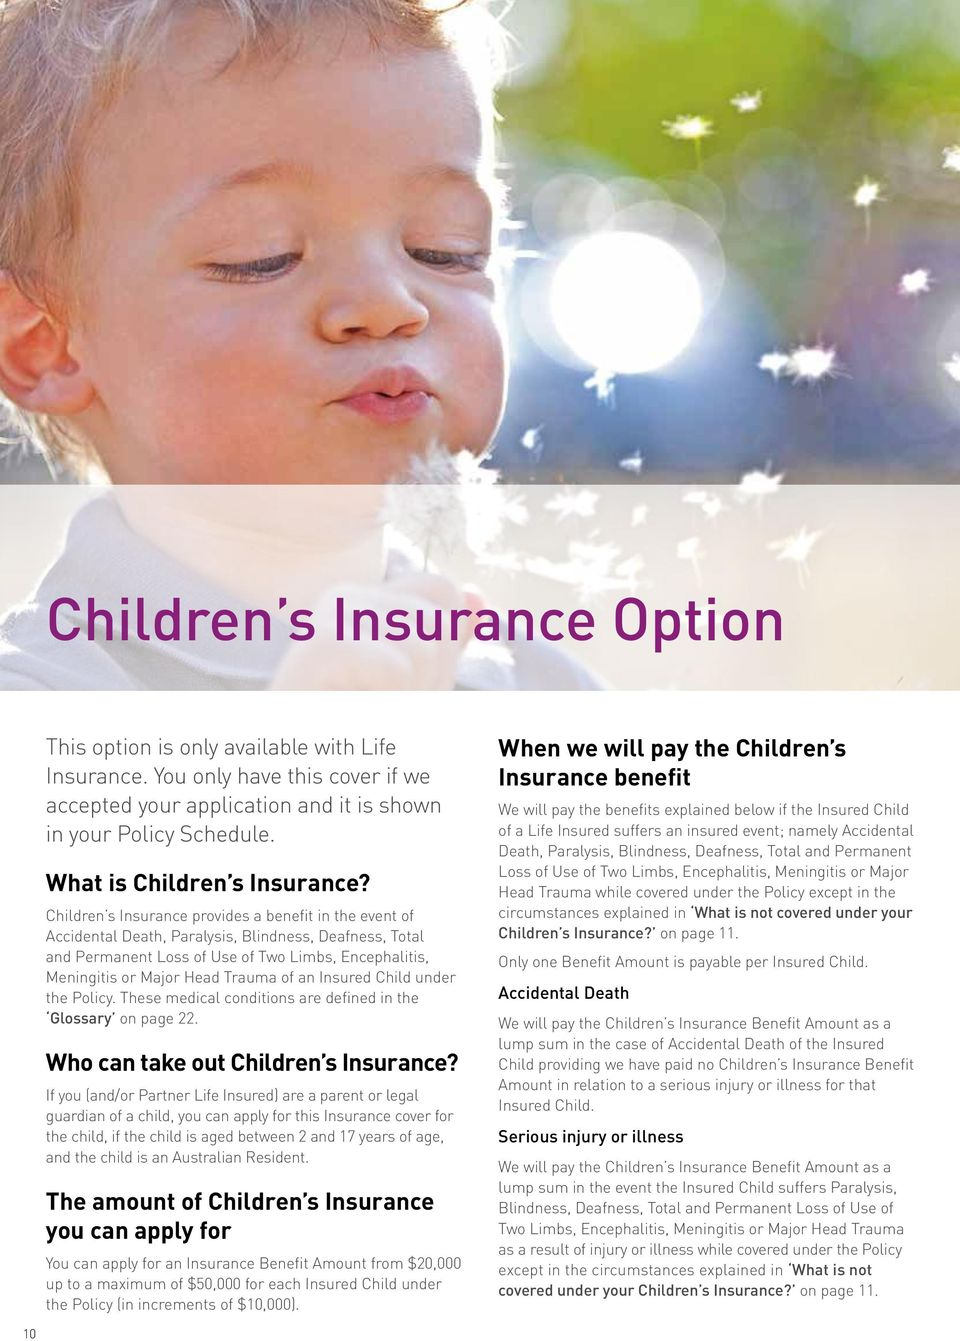 Children s Insurance provides a benefit in the event of Accidental Death, Paralysis, Blindness, Deafness, Total and Permanent Loss of Use of Two Limbs, Encephalitis, Meningitis or Major Head Trauma